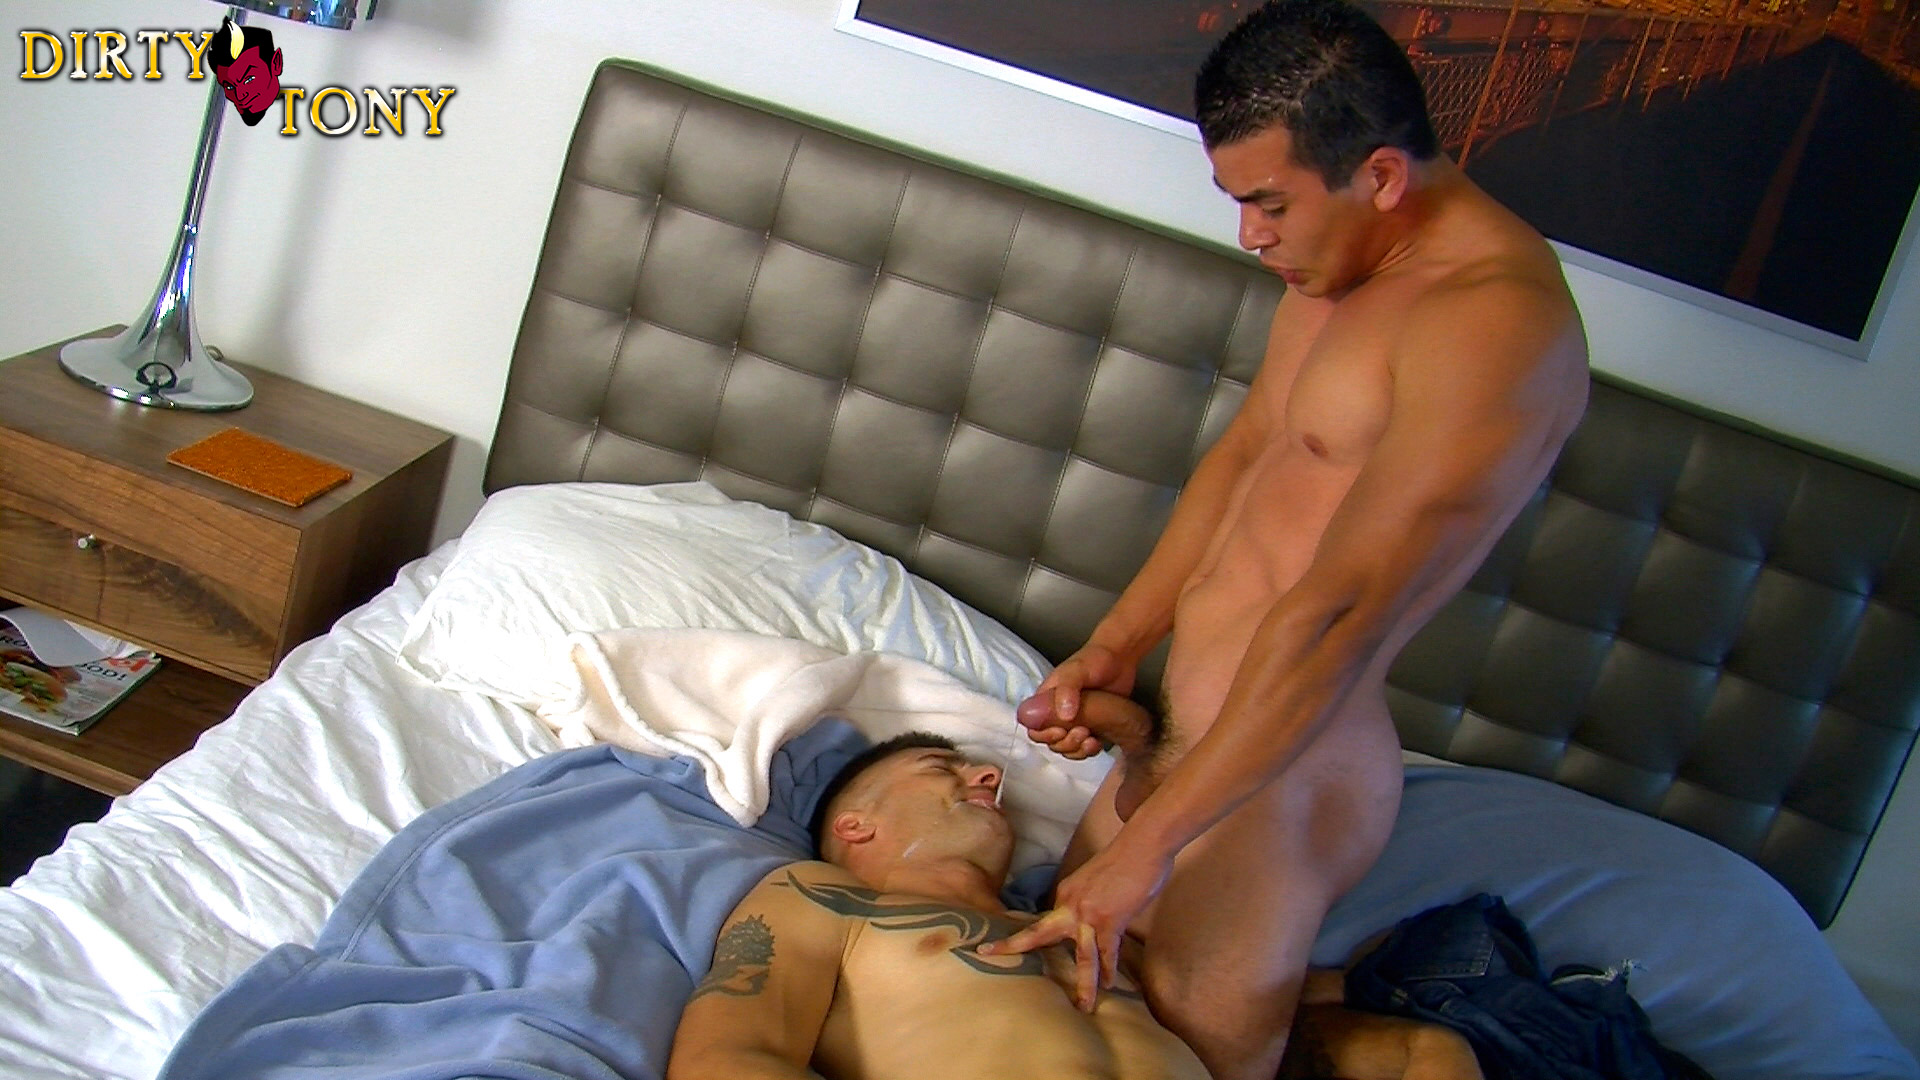 Dirty Tony FRANCISCO FUCKS JOE RIVERS thick cock 13 Massive Amateur Uncut Latino Cock Fucks A Hot White Bottom